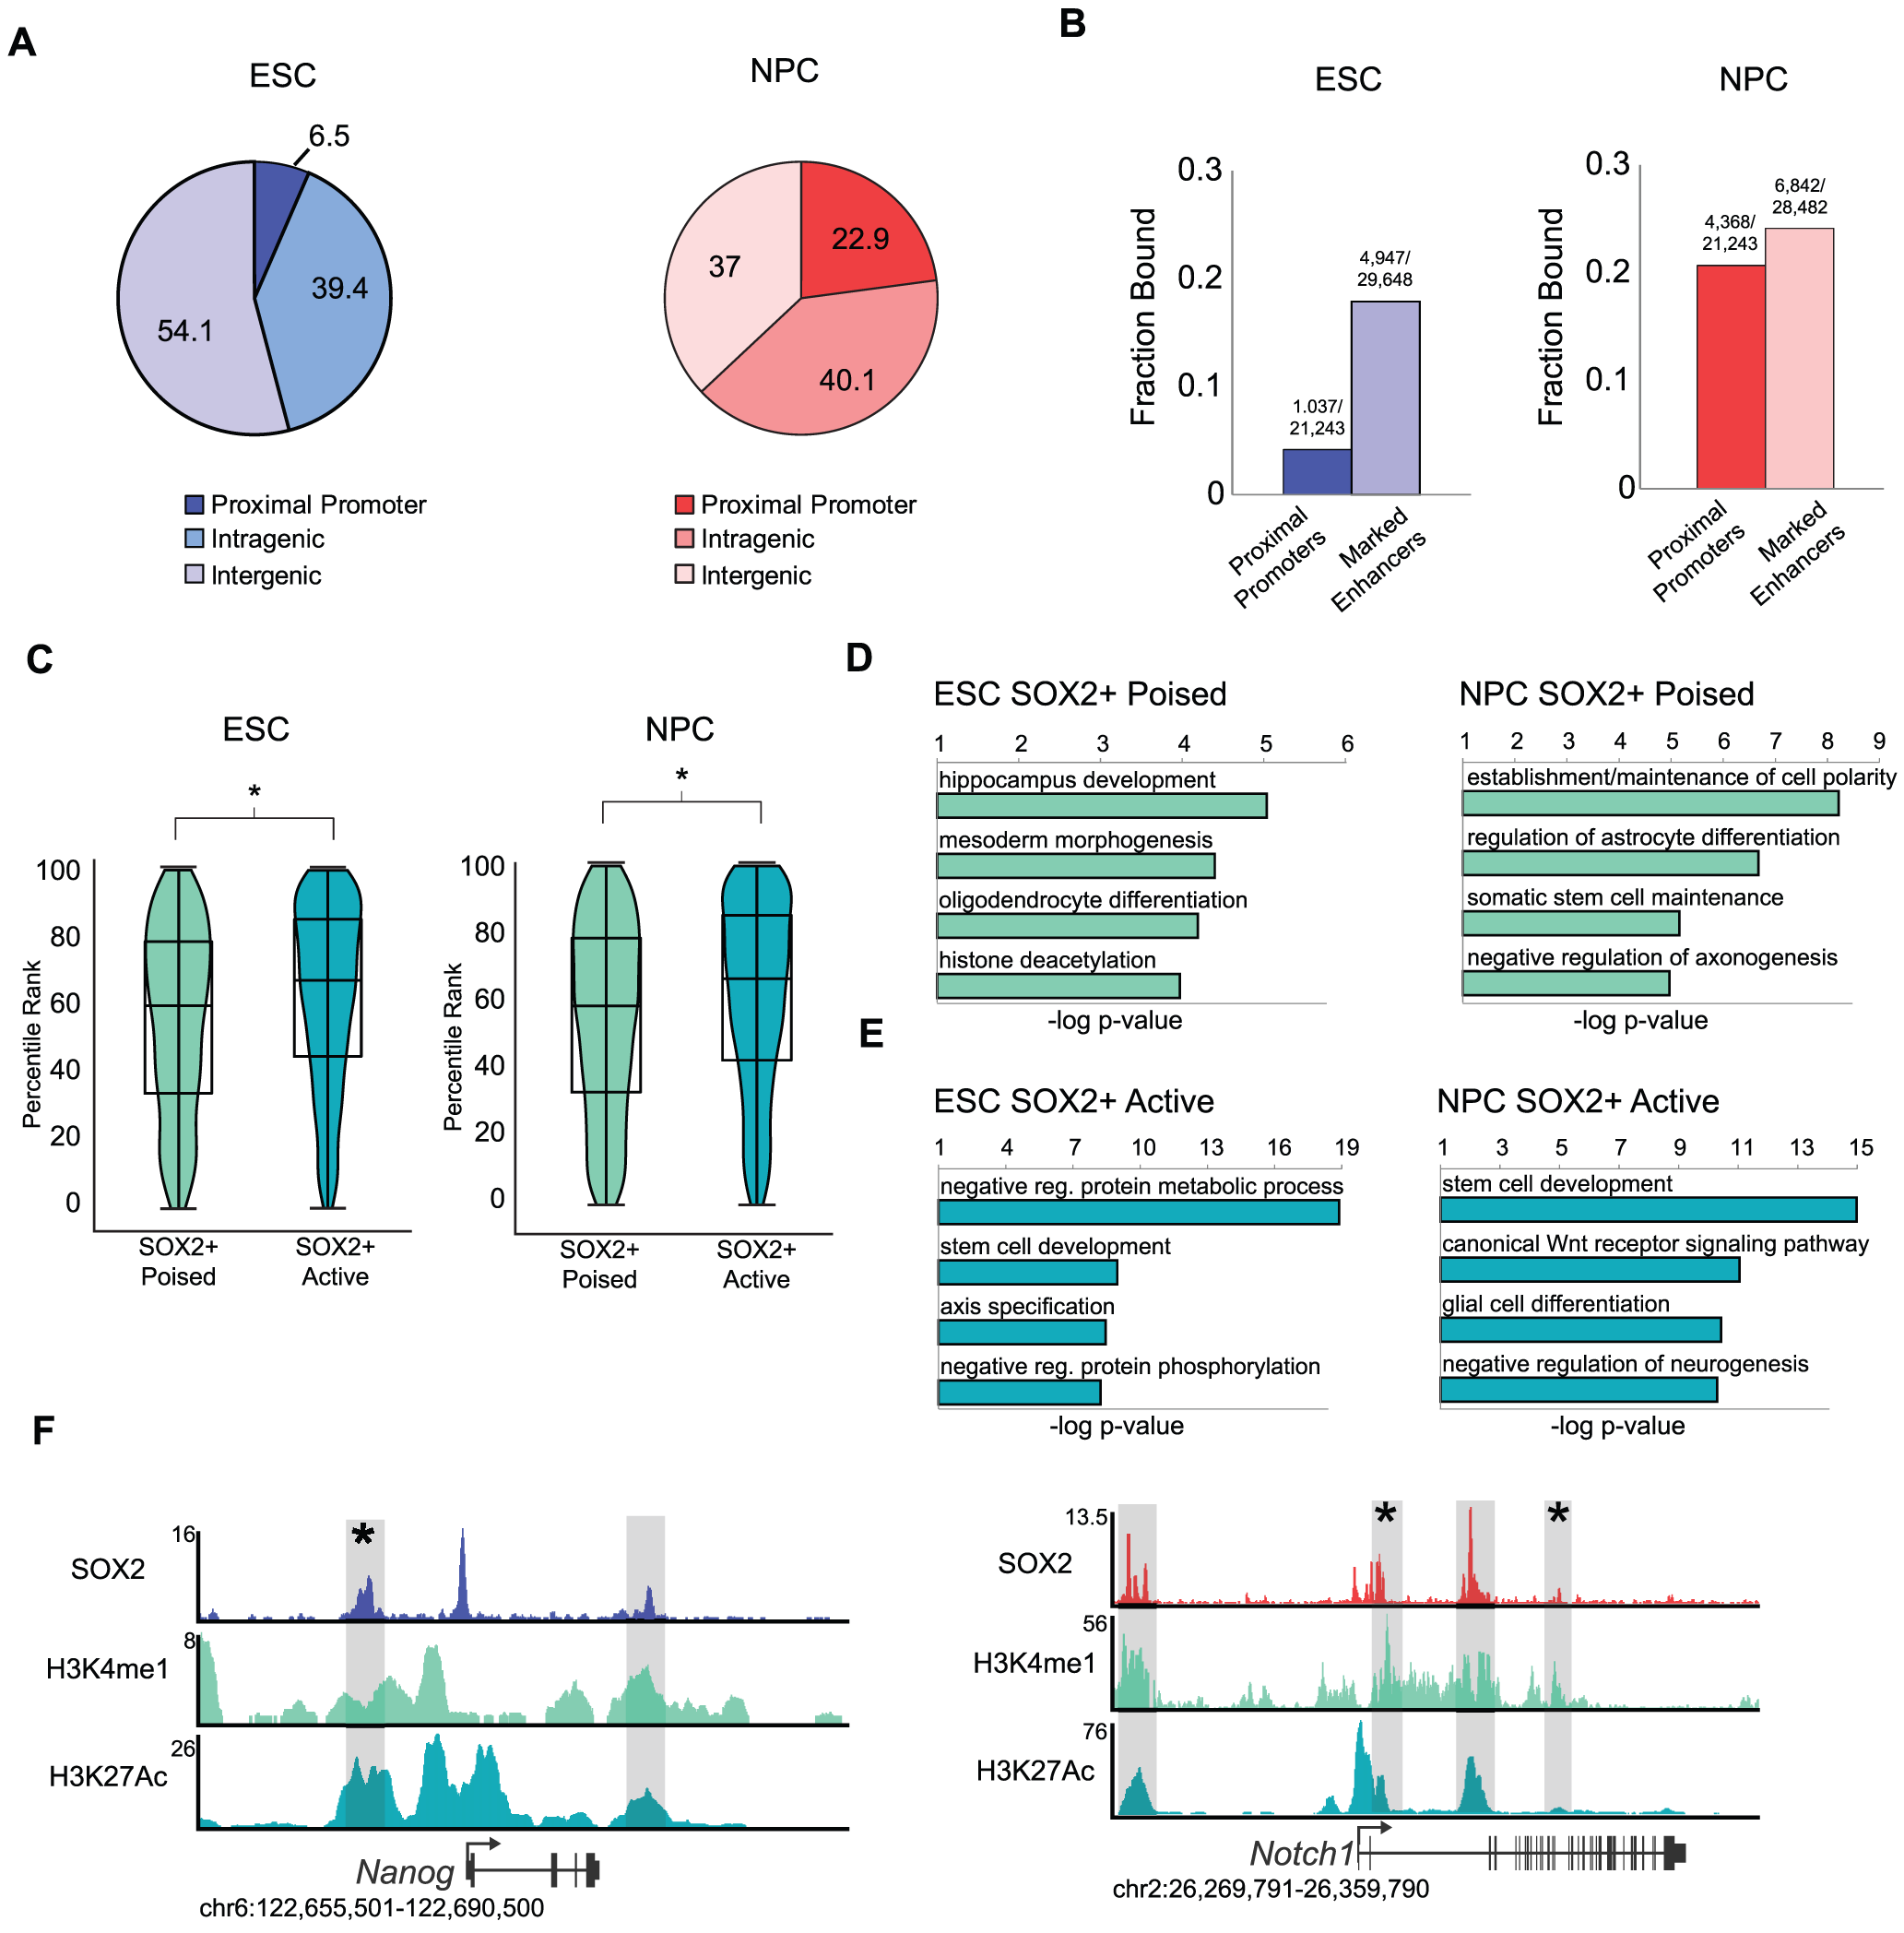 SOX2 binds distinct enhancer regions in ESCs and NPCs.